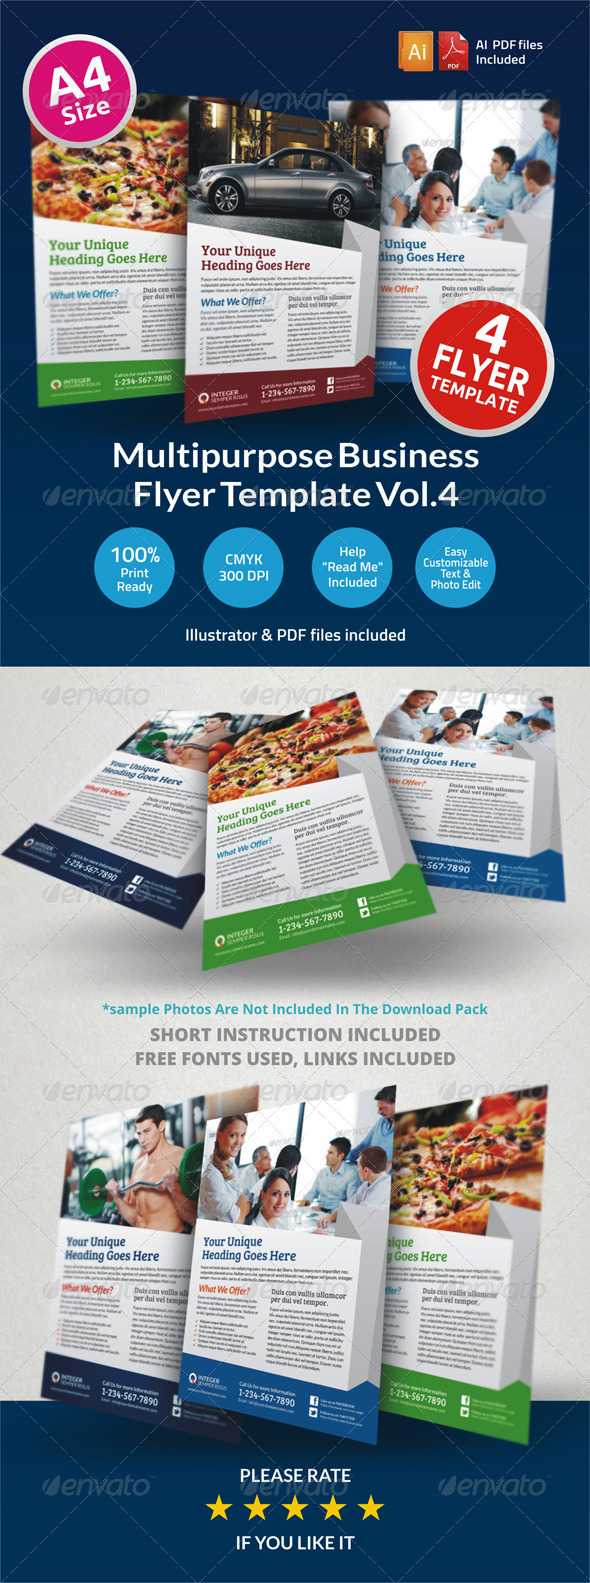 Multipurpose Business Flyer Vol.4 - Corporate Flyers